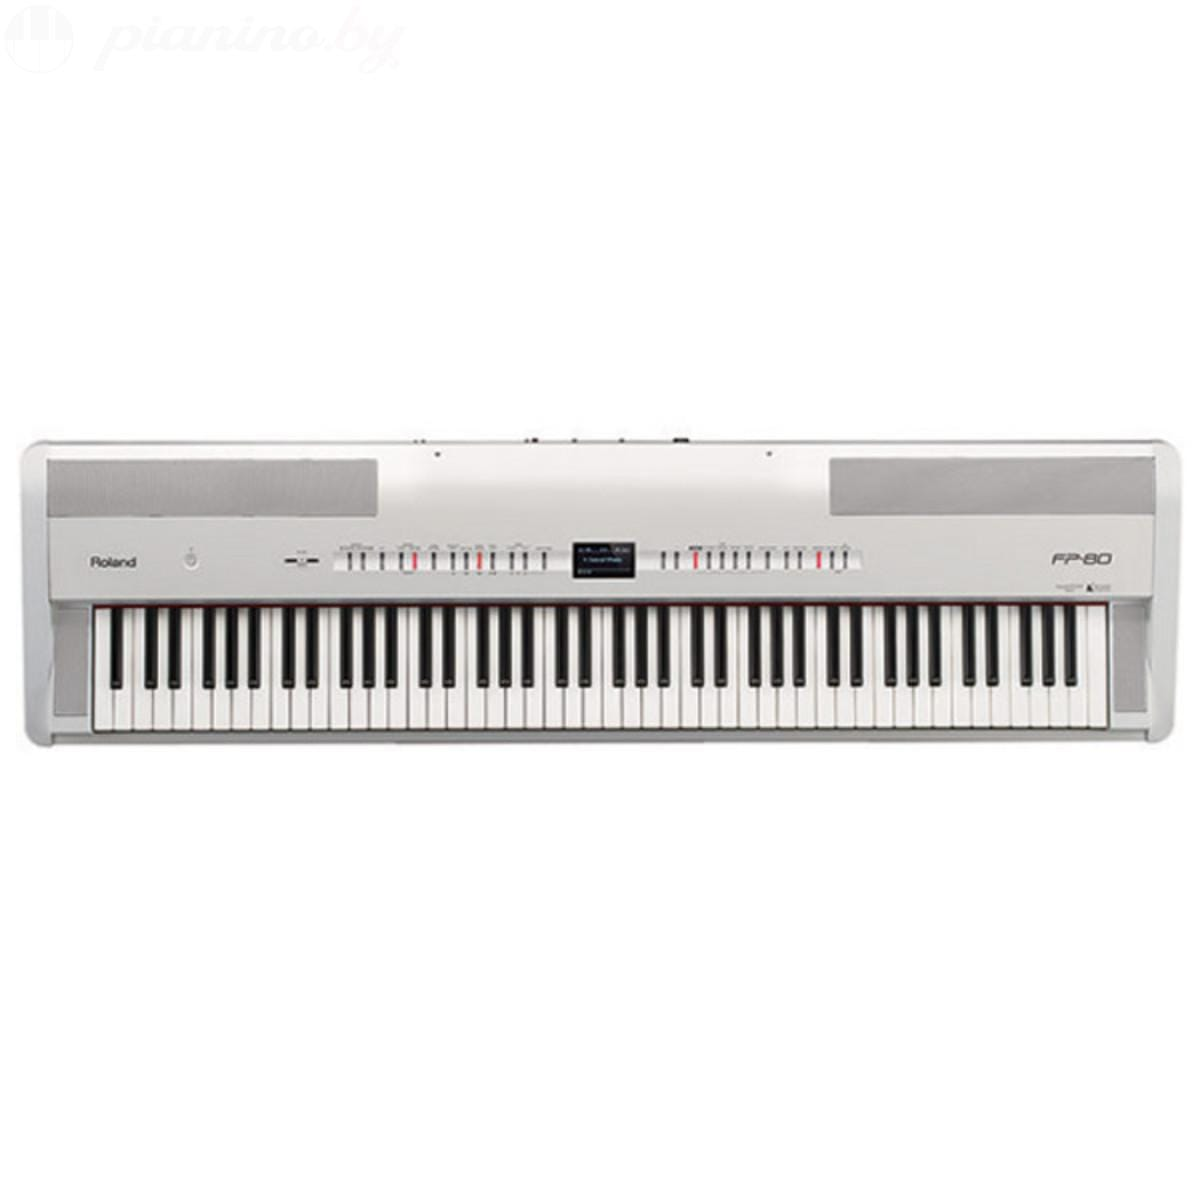 Цифровое пианино Roland FP-80 White